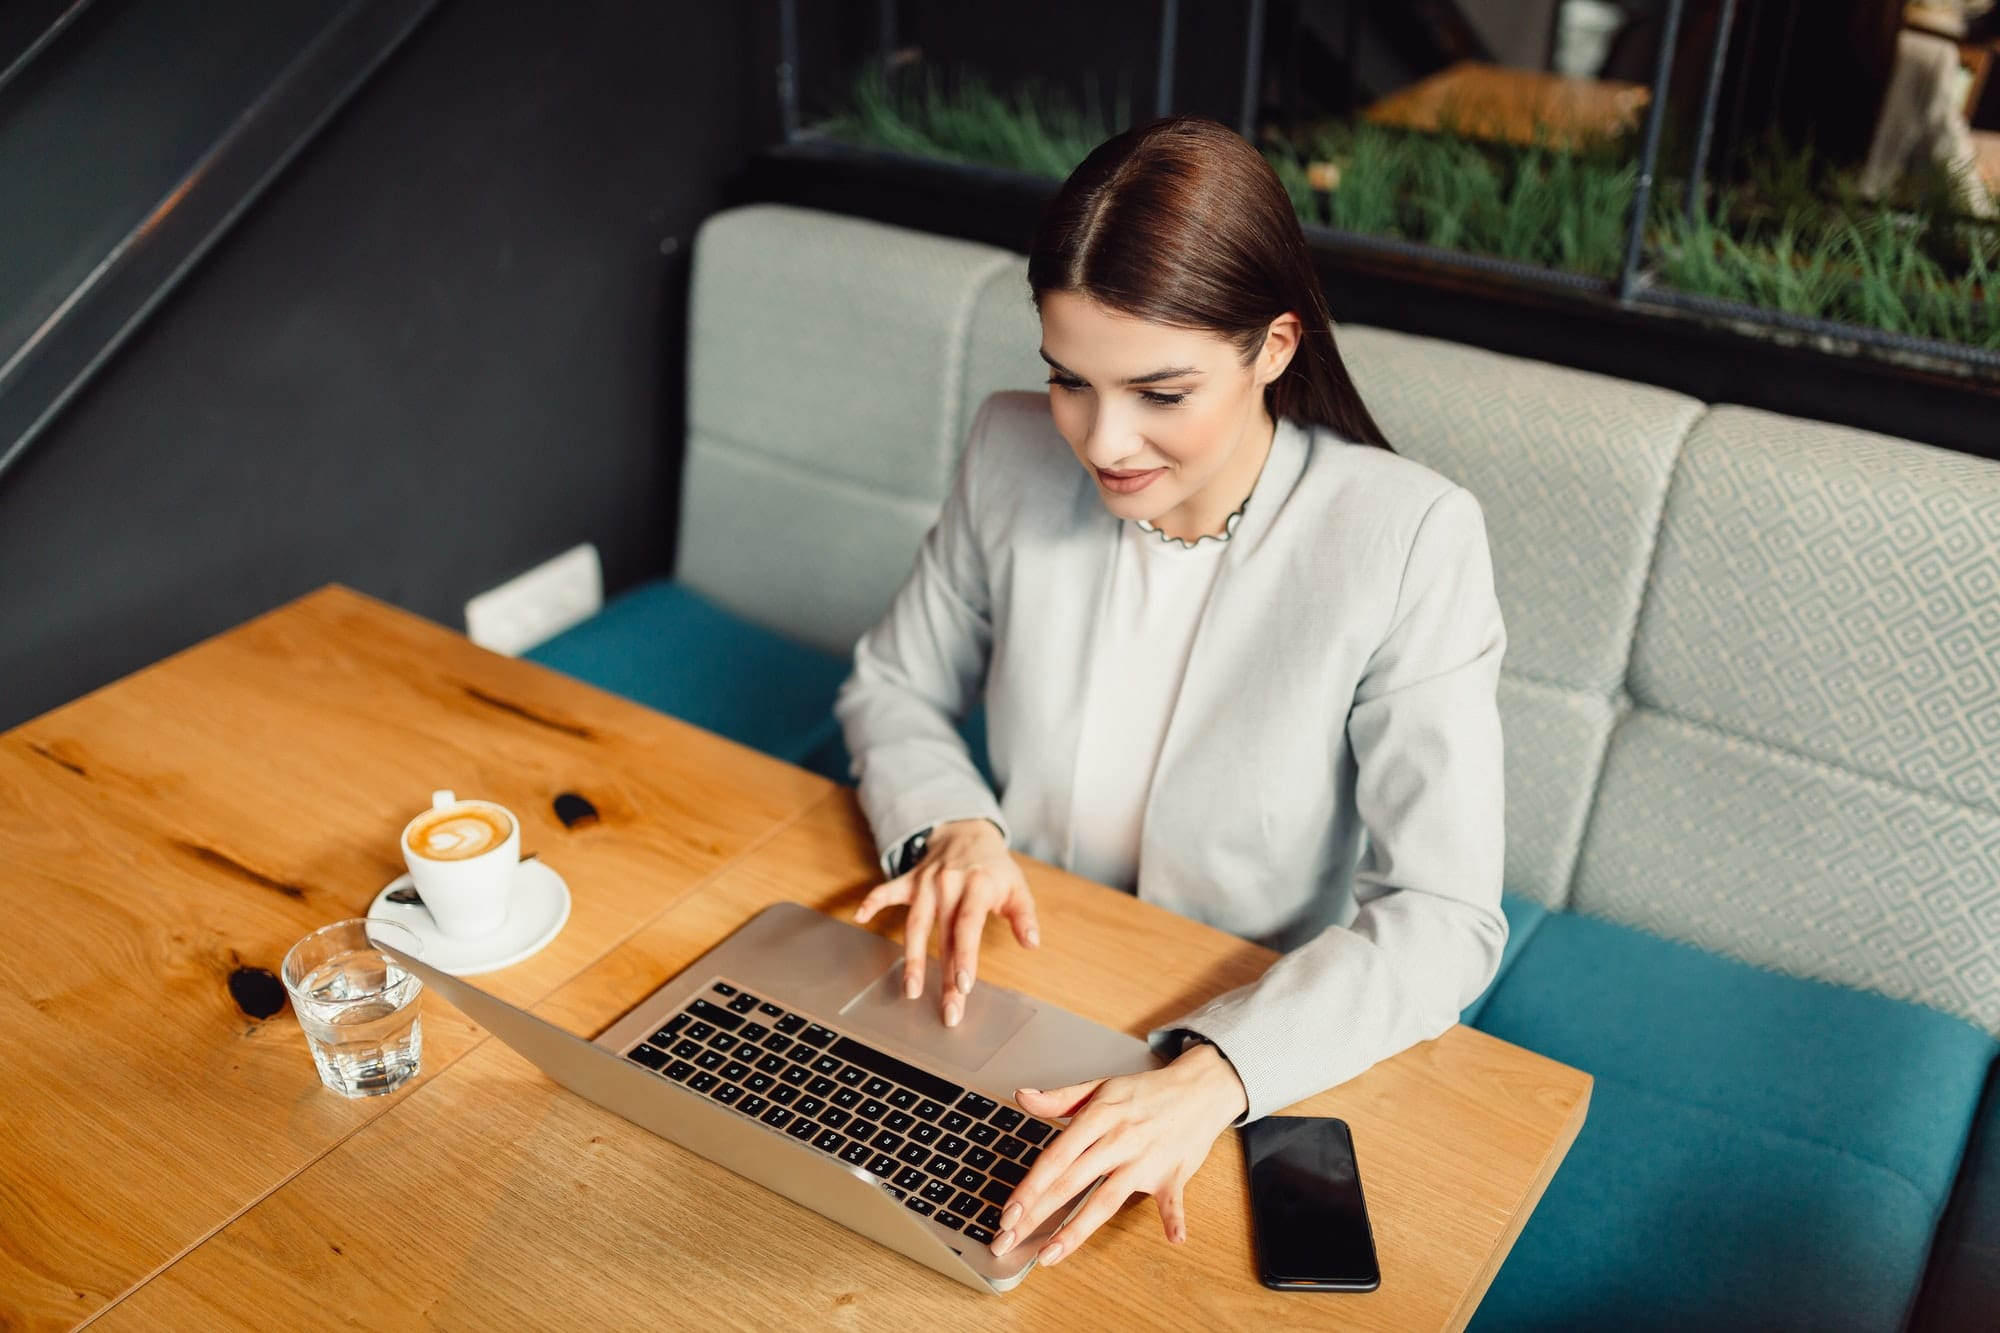 Pretty business woman using laptop in cafe. Business, online business concept.